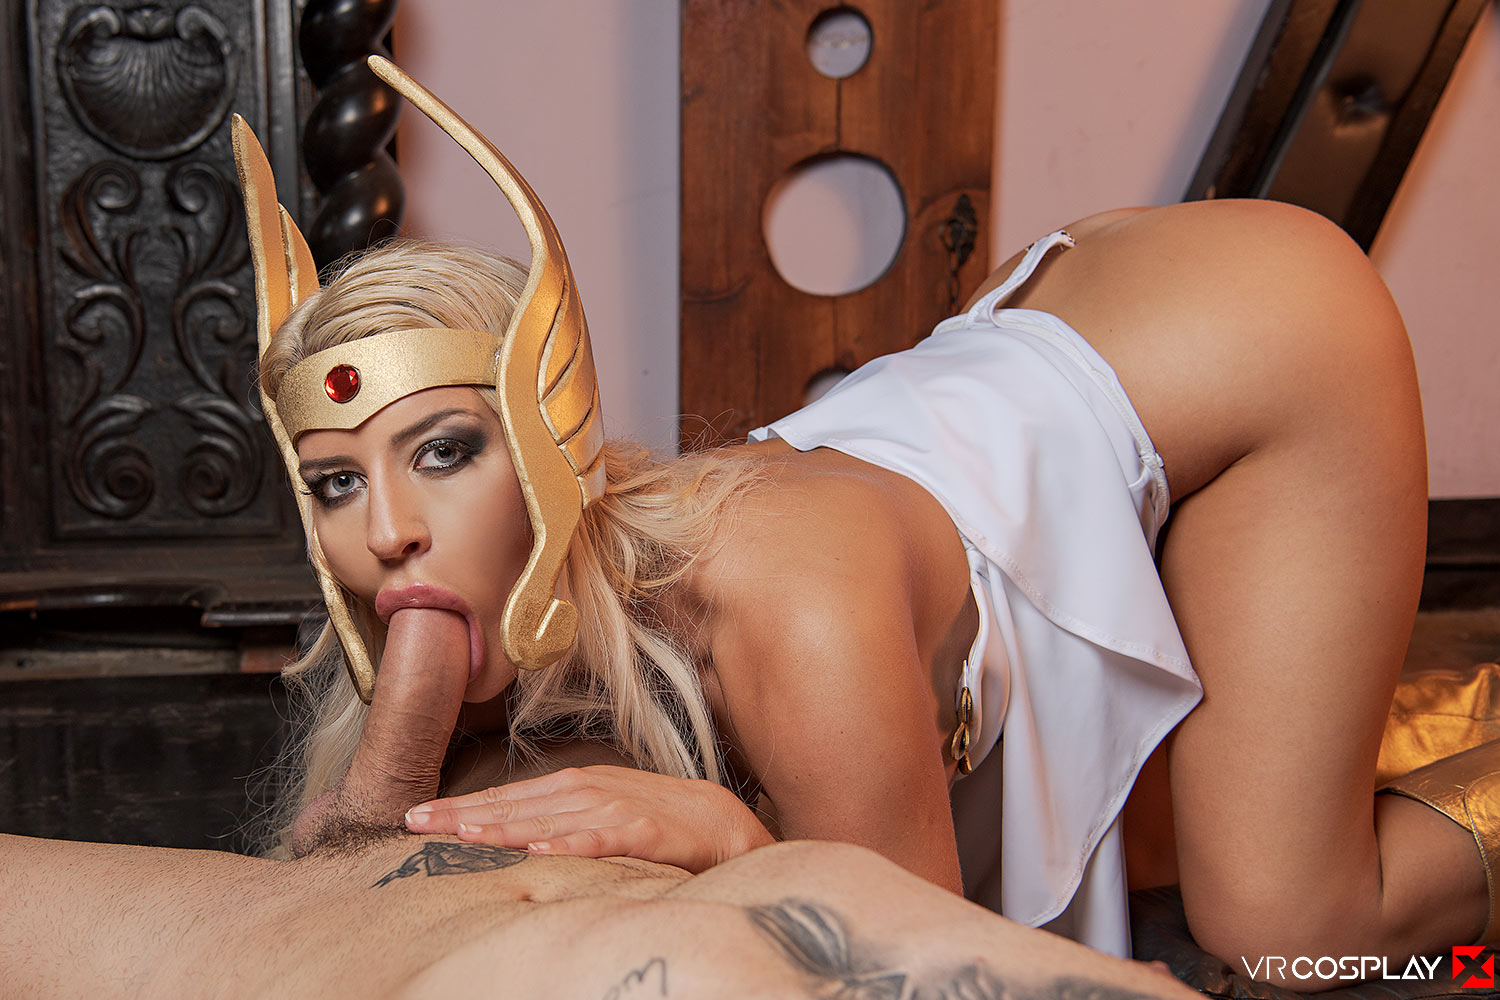 She-Ra A XXX Parody VR Porn Video